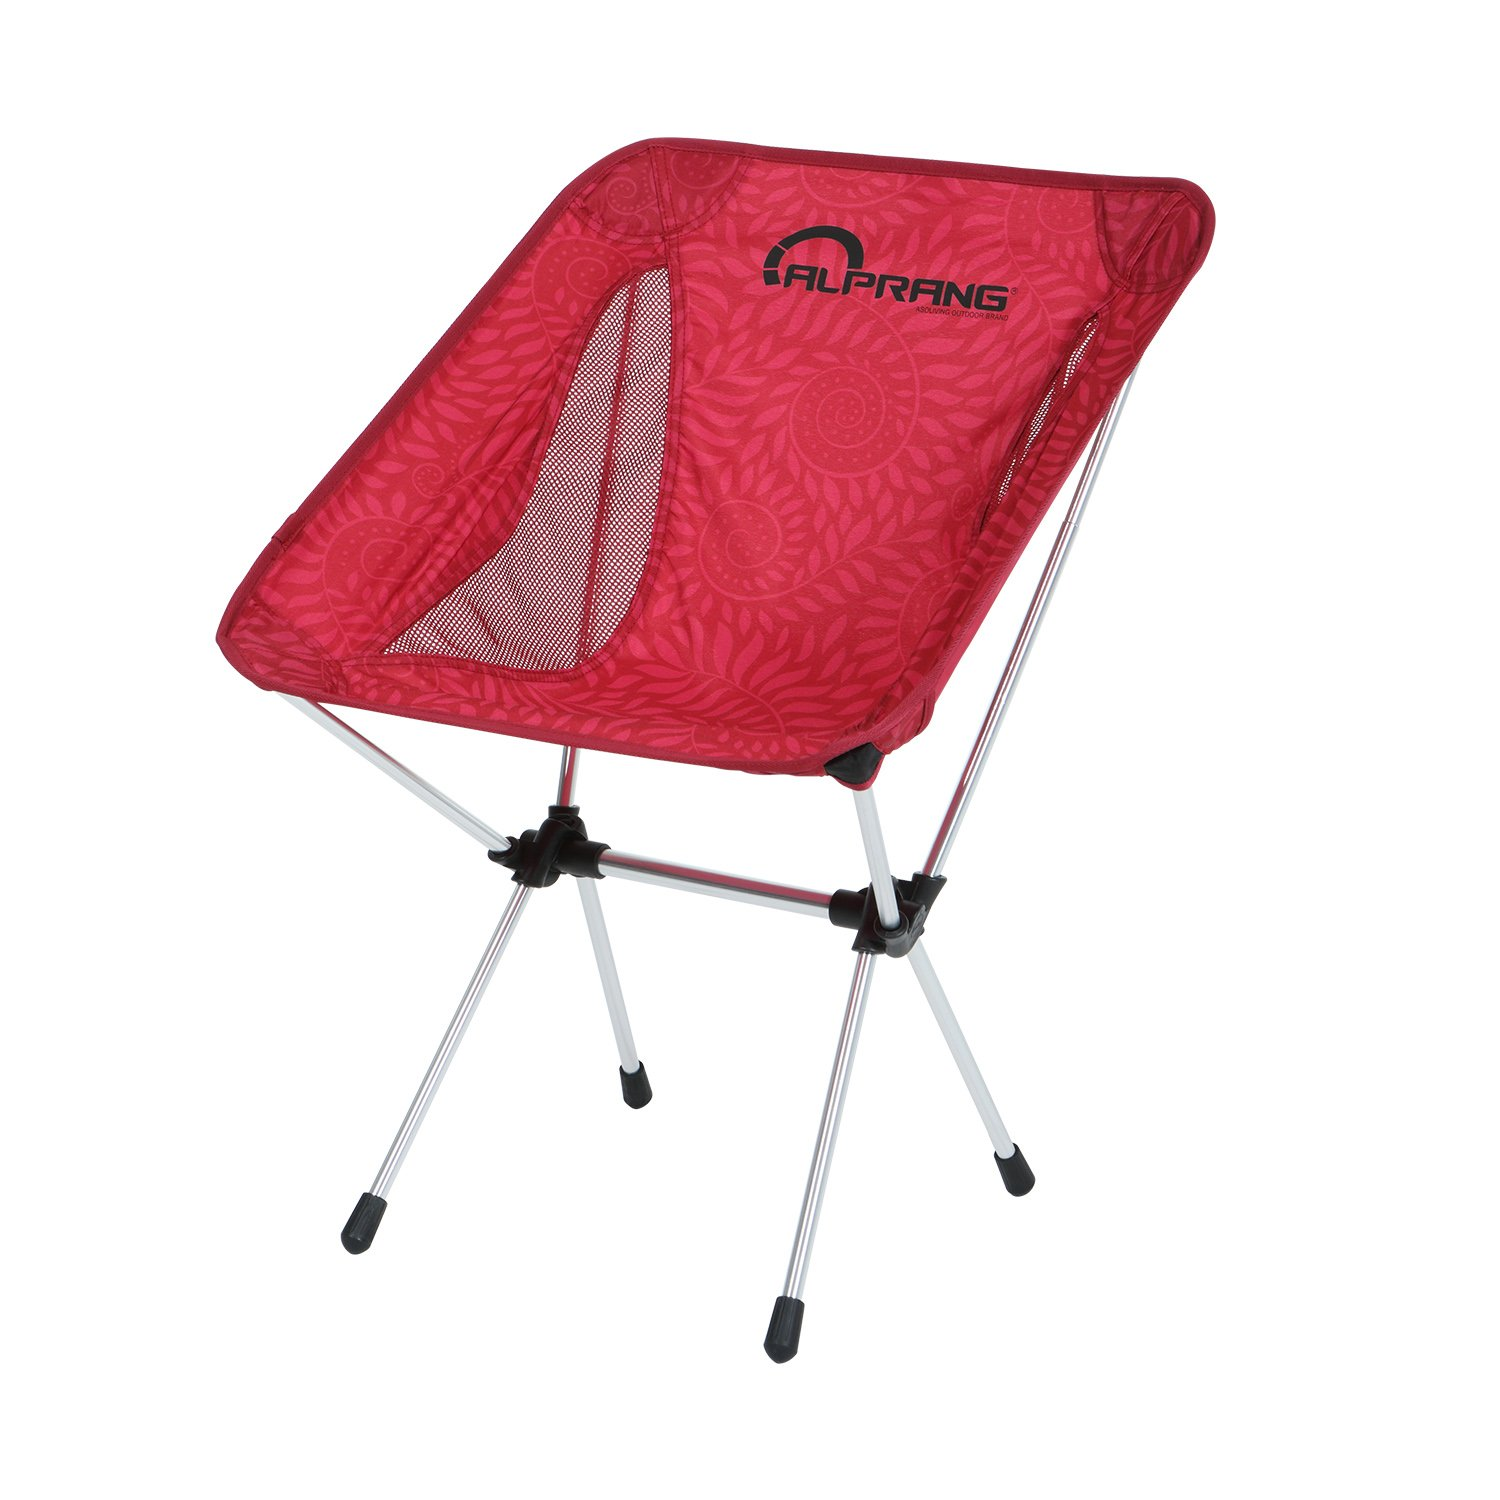 Camping Chair Heavy Duty Camp Chair 150kg Capacity Portable